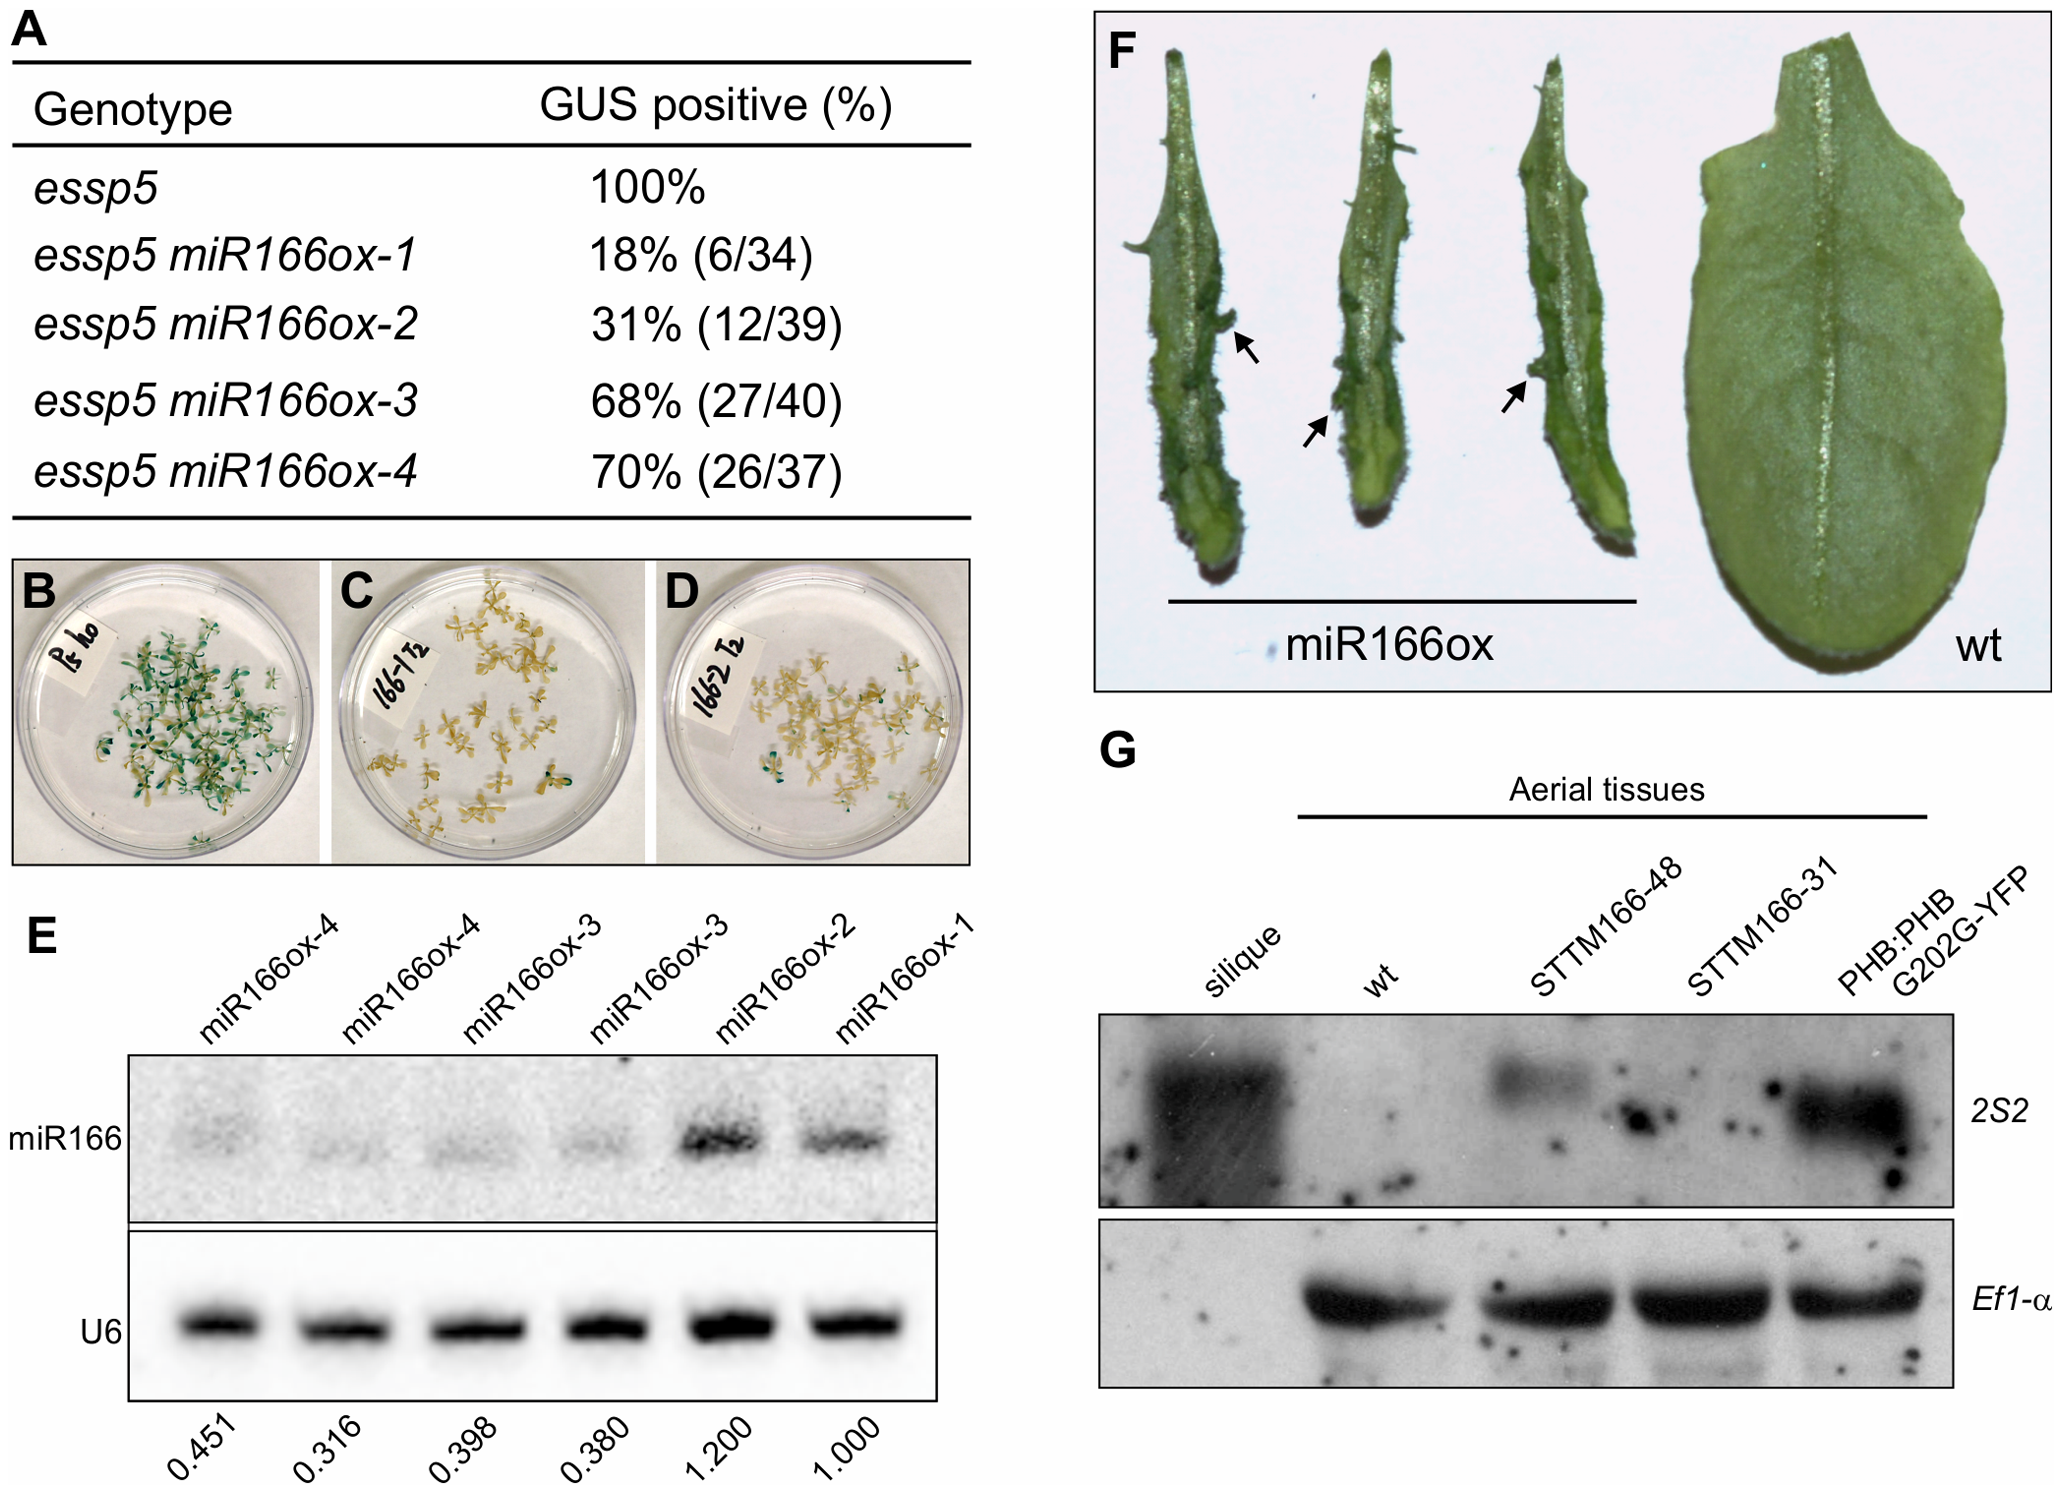 Over-Expression of miRNA166 Rescues the <i>essp5</i> GUS Phenotype, and Loss of miR166 Causes Ectopic Expression of Seed Maturation Genes.